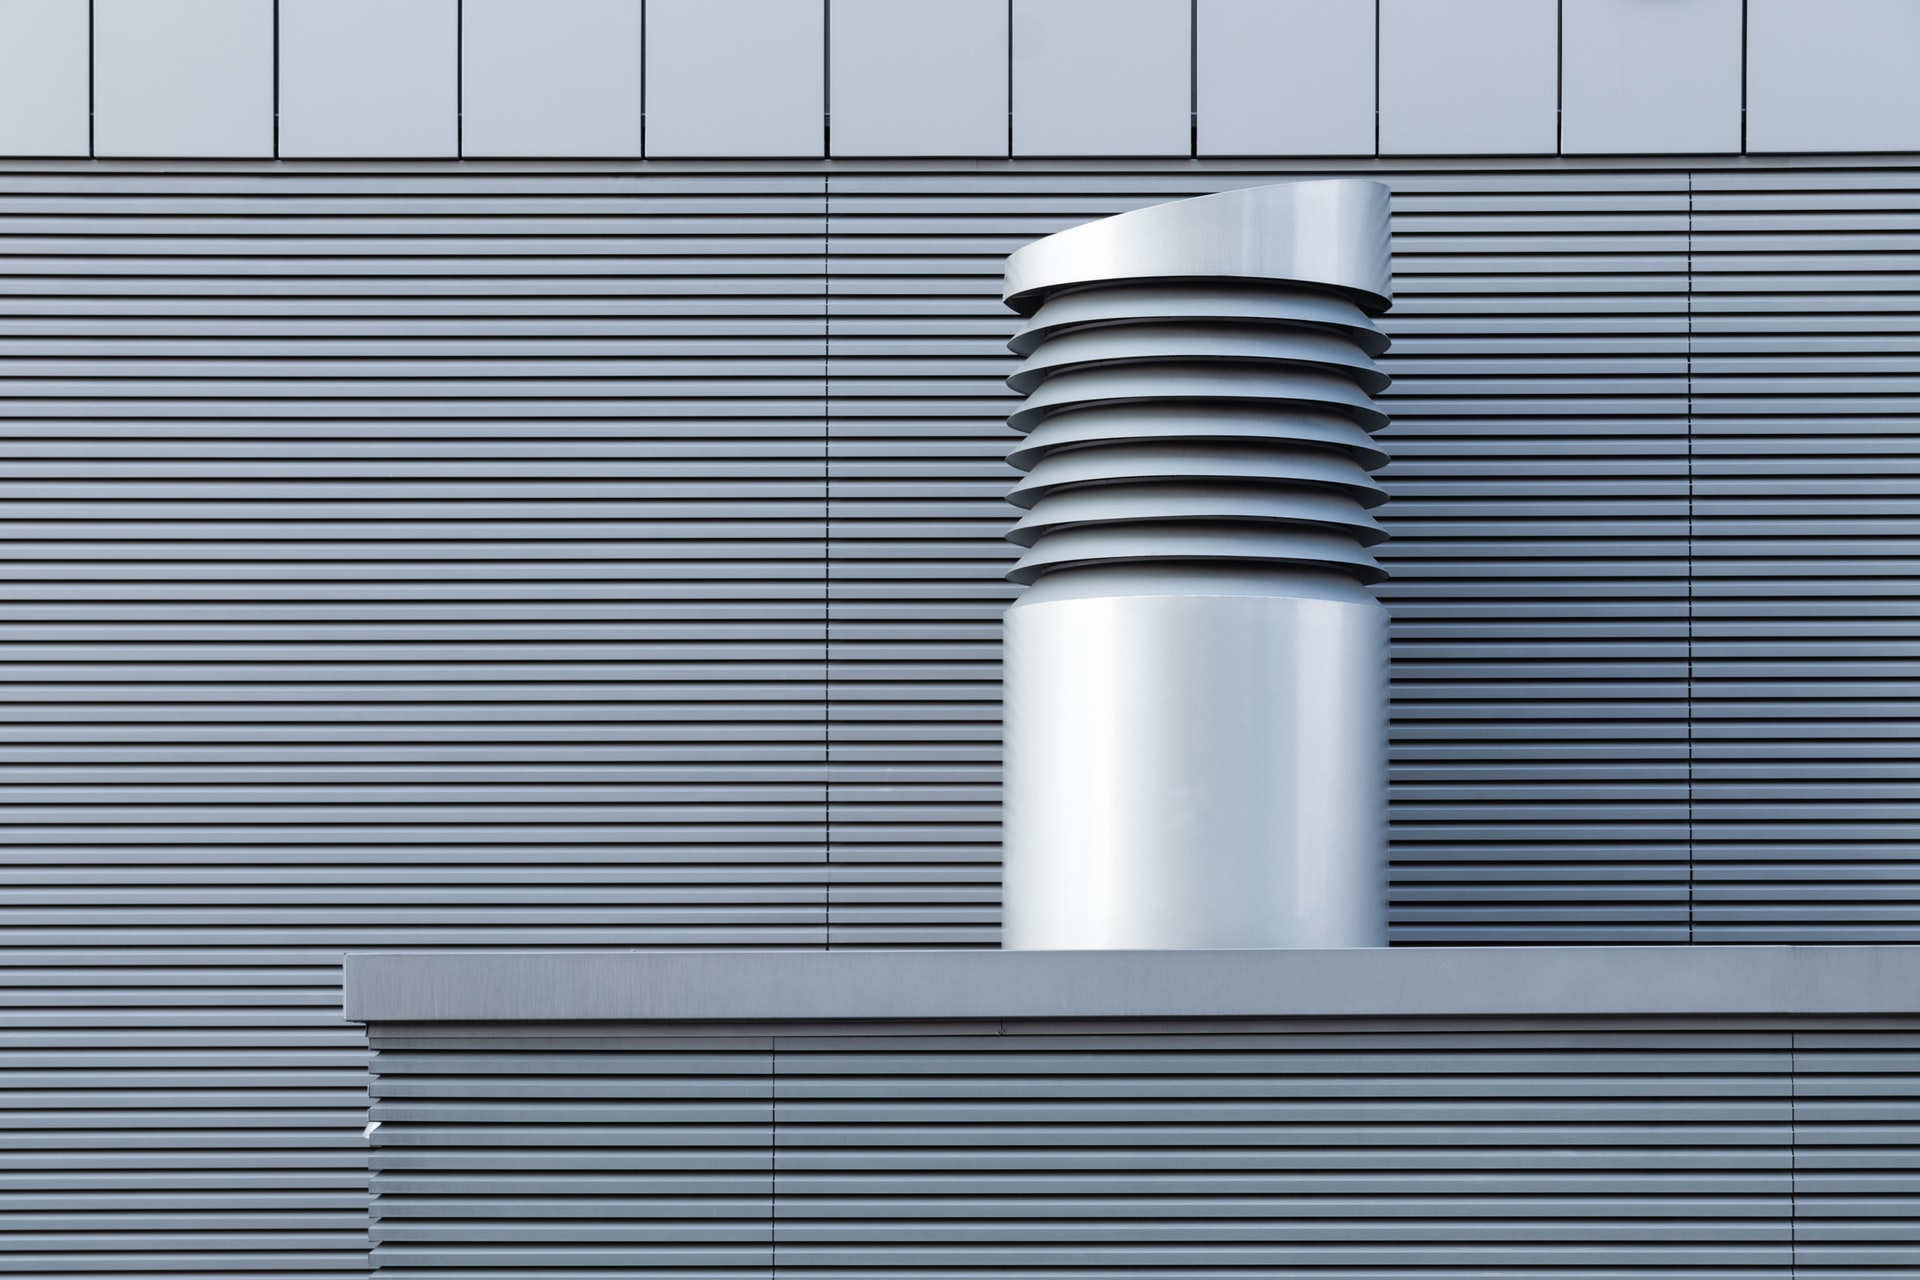 Refrigeration and air conditioning elements manufactured and designed by specialists